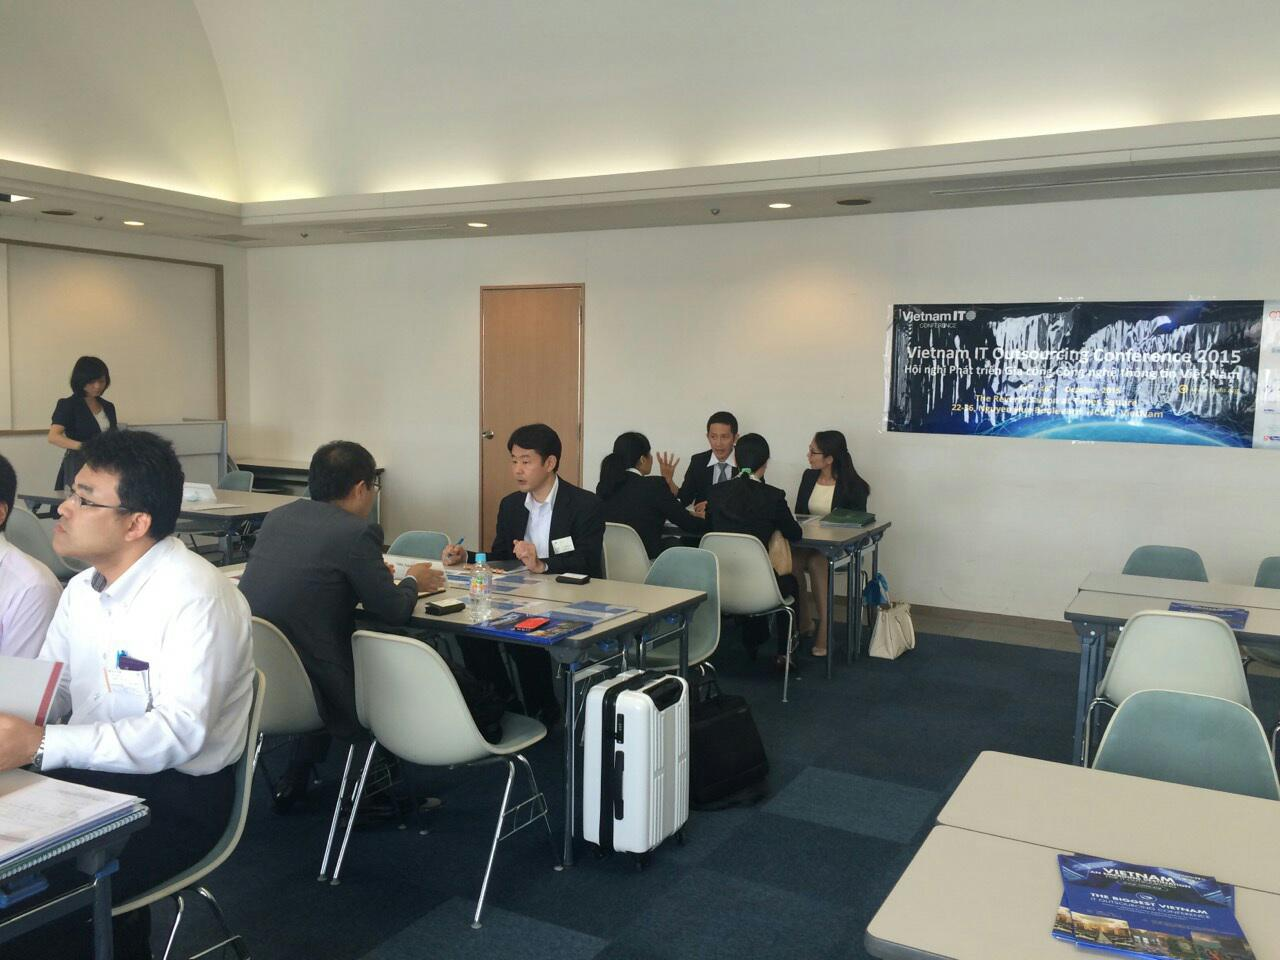 VNITO 2015 business matching session in Osaka